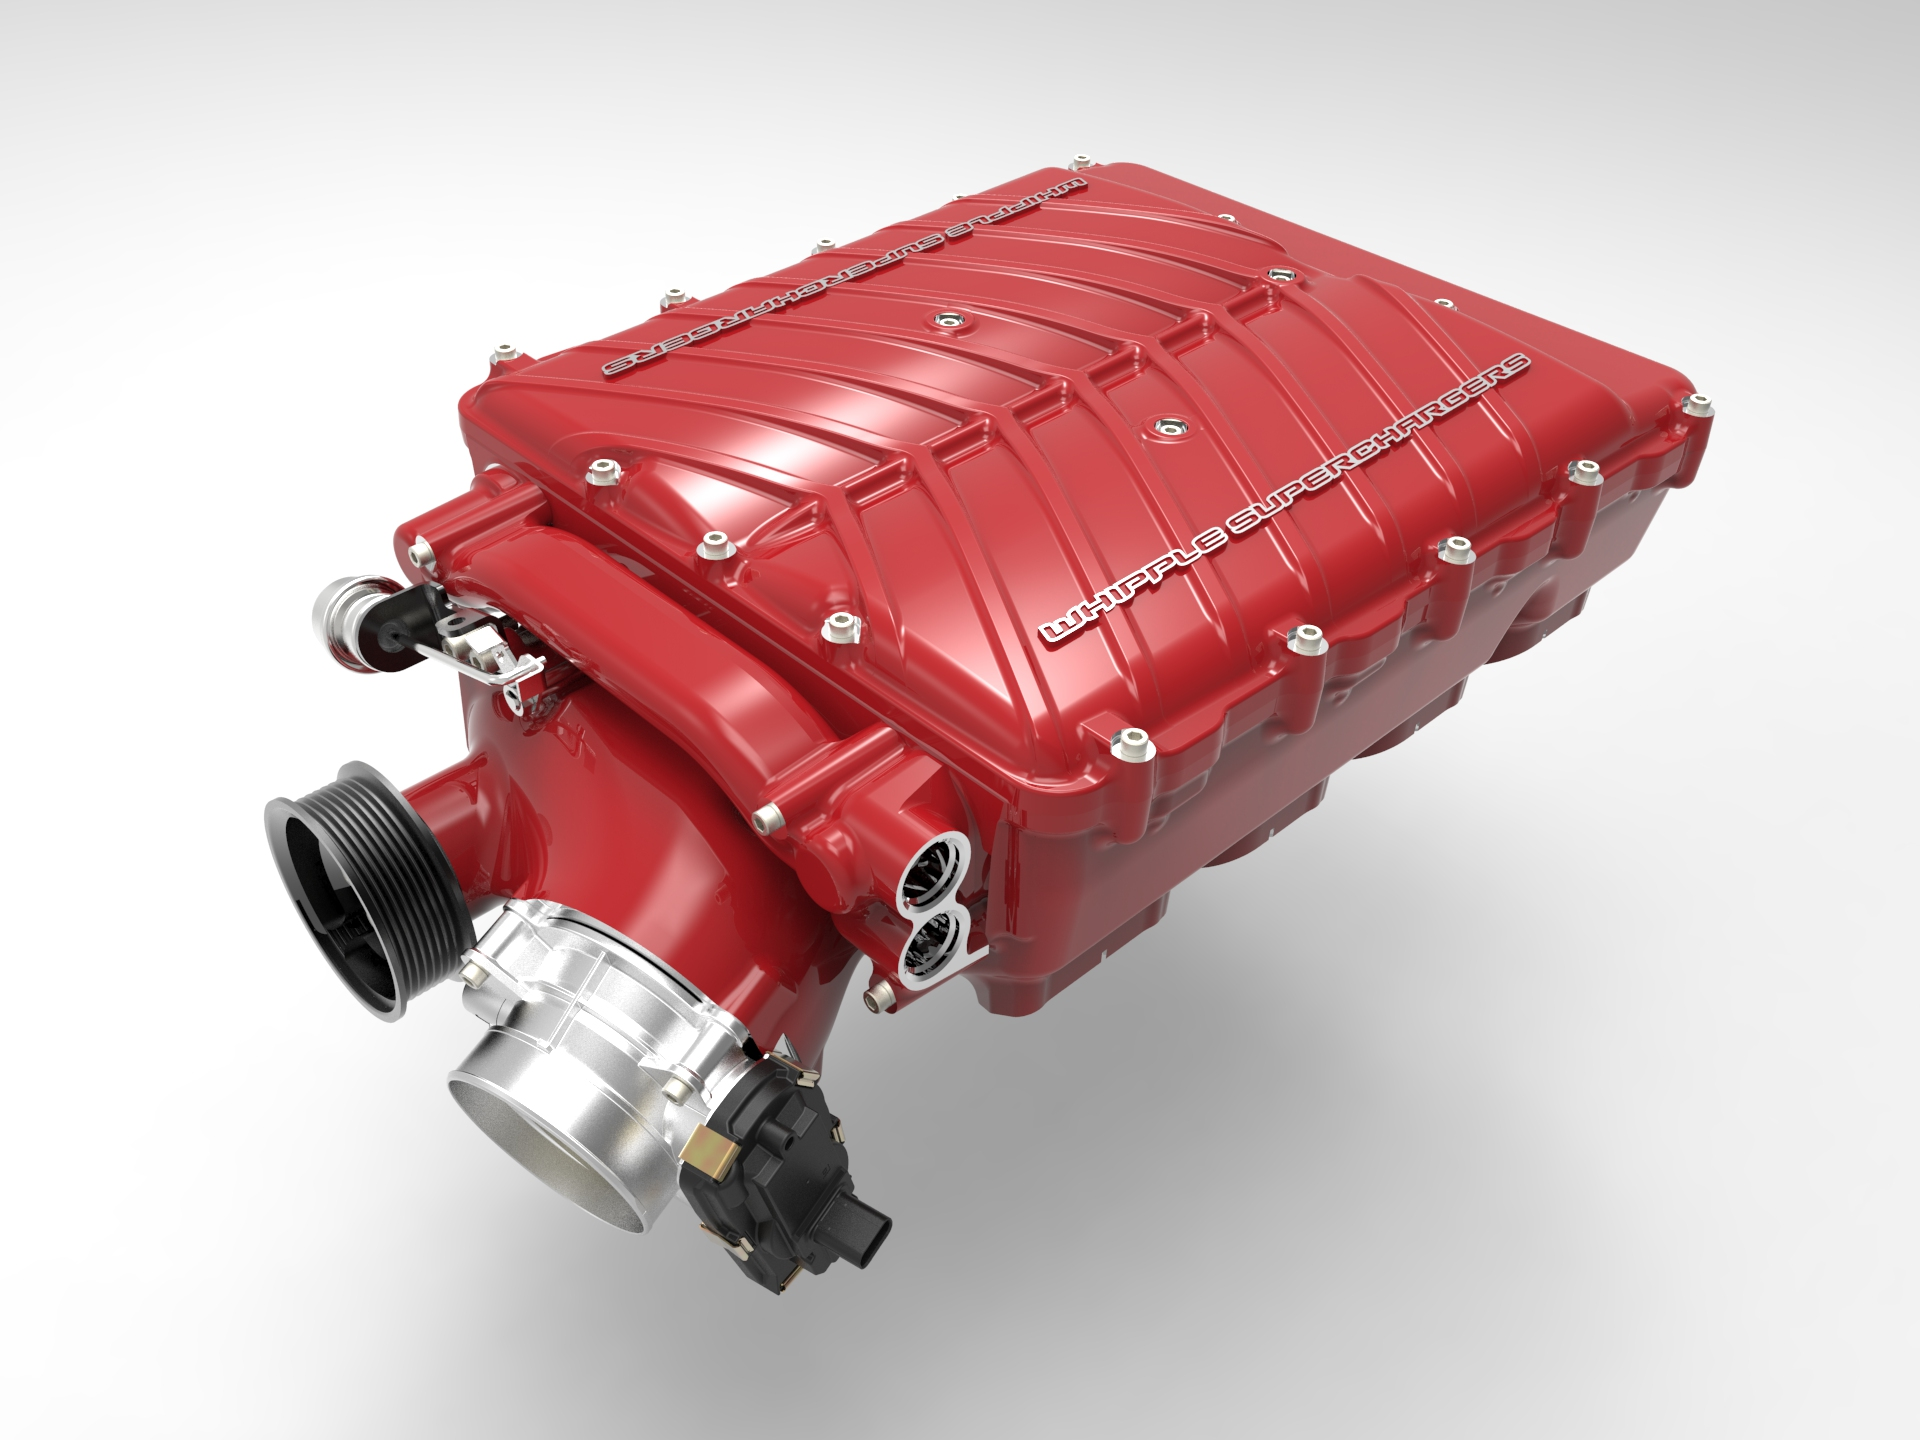 2016-2019 Camaro Whipple Supercharger System